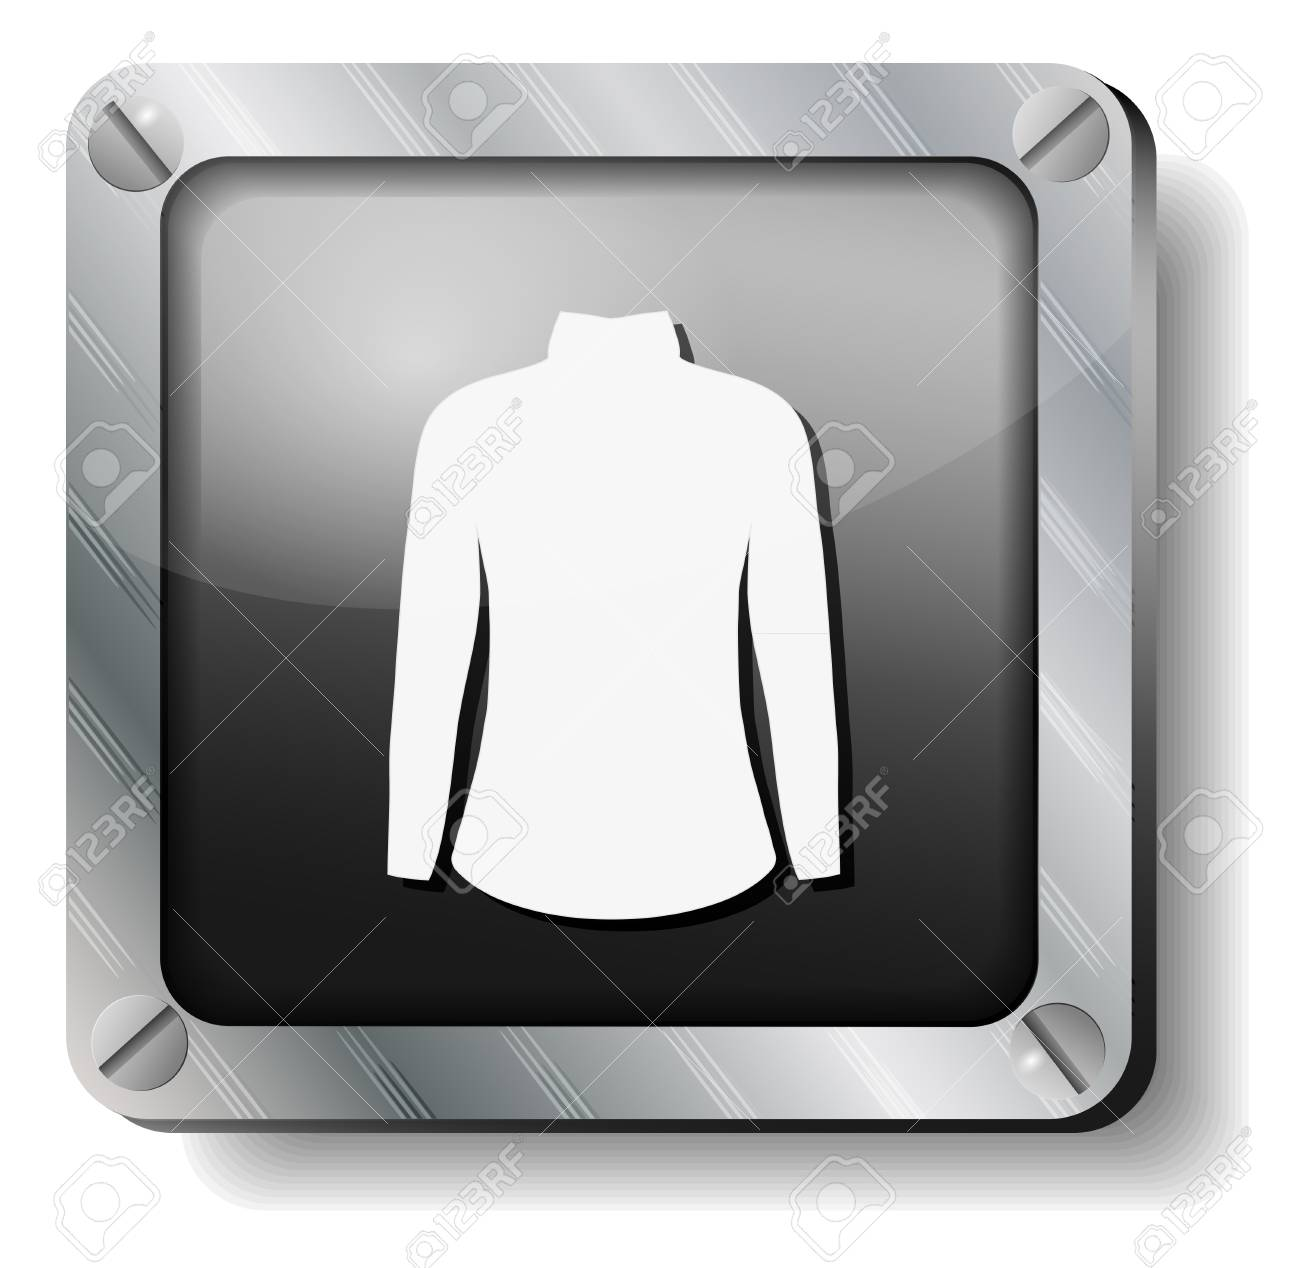 steel dress icon Stock Vector - 14988281